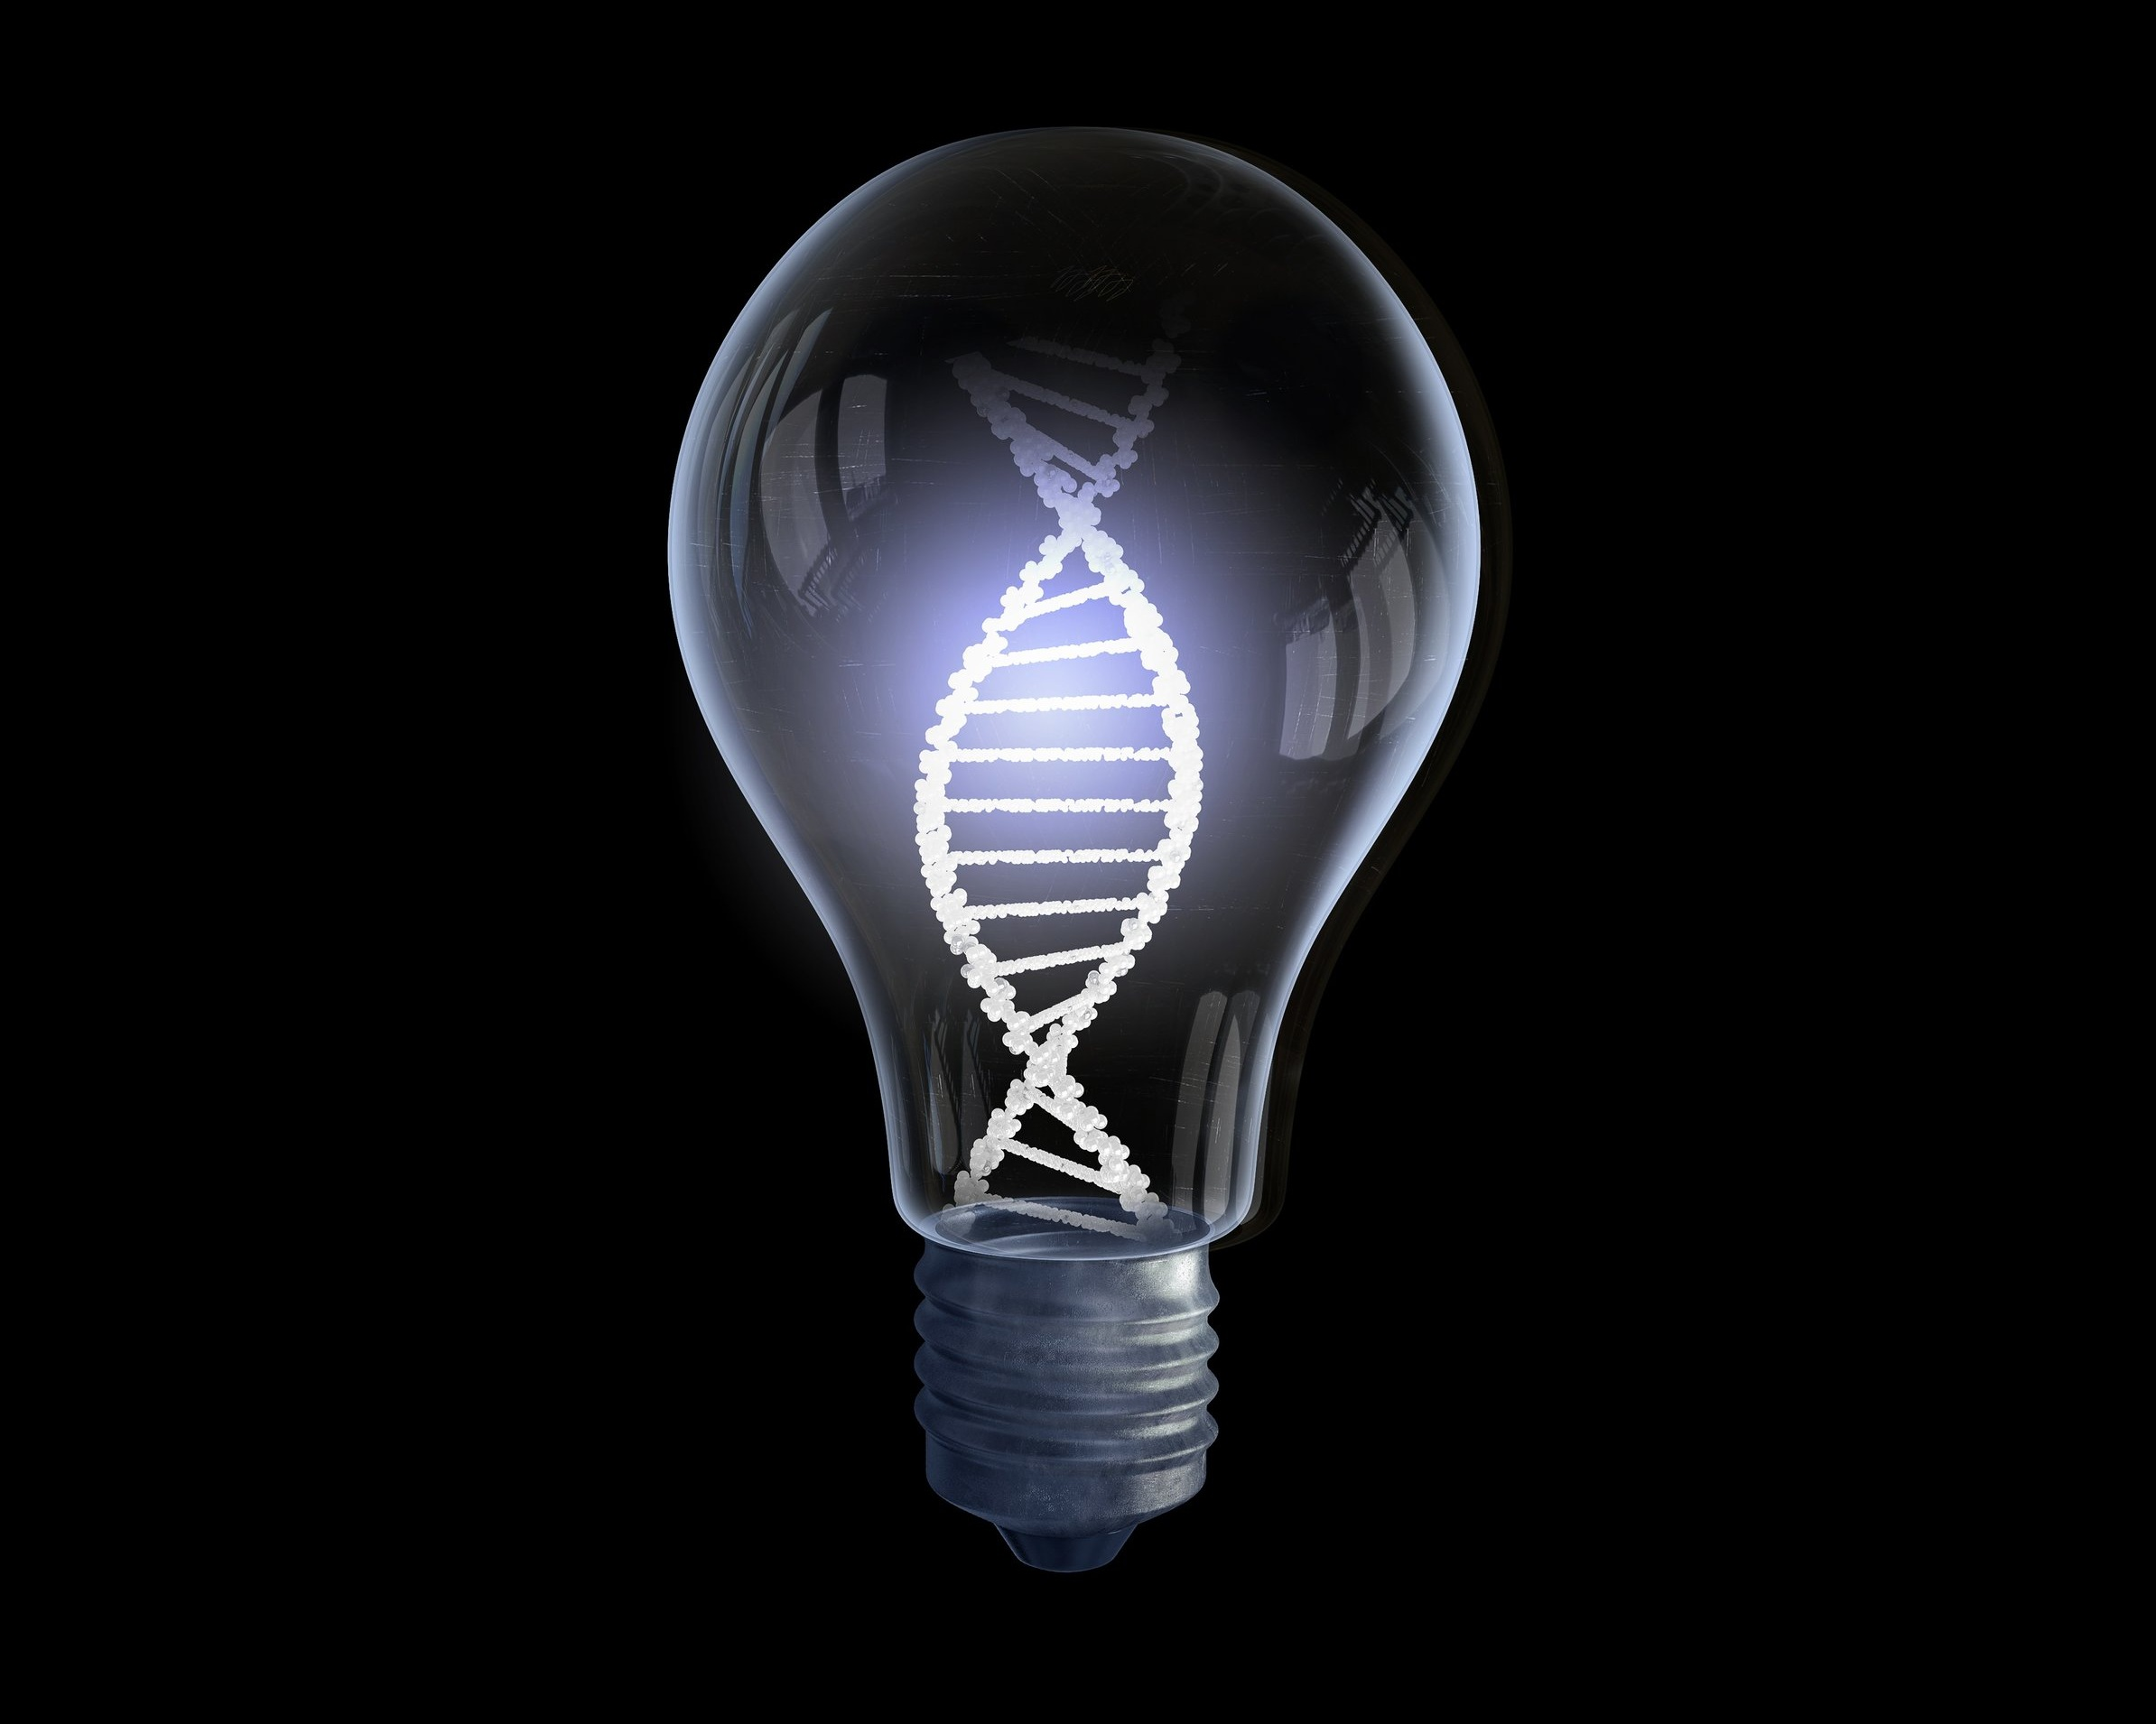 shutterstock_328407125+DNA+Light+Bulb.jpg